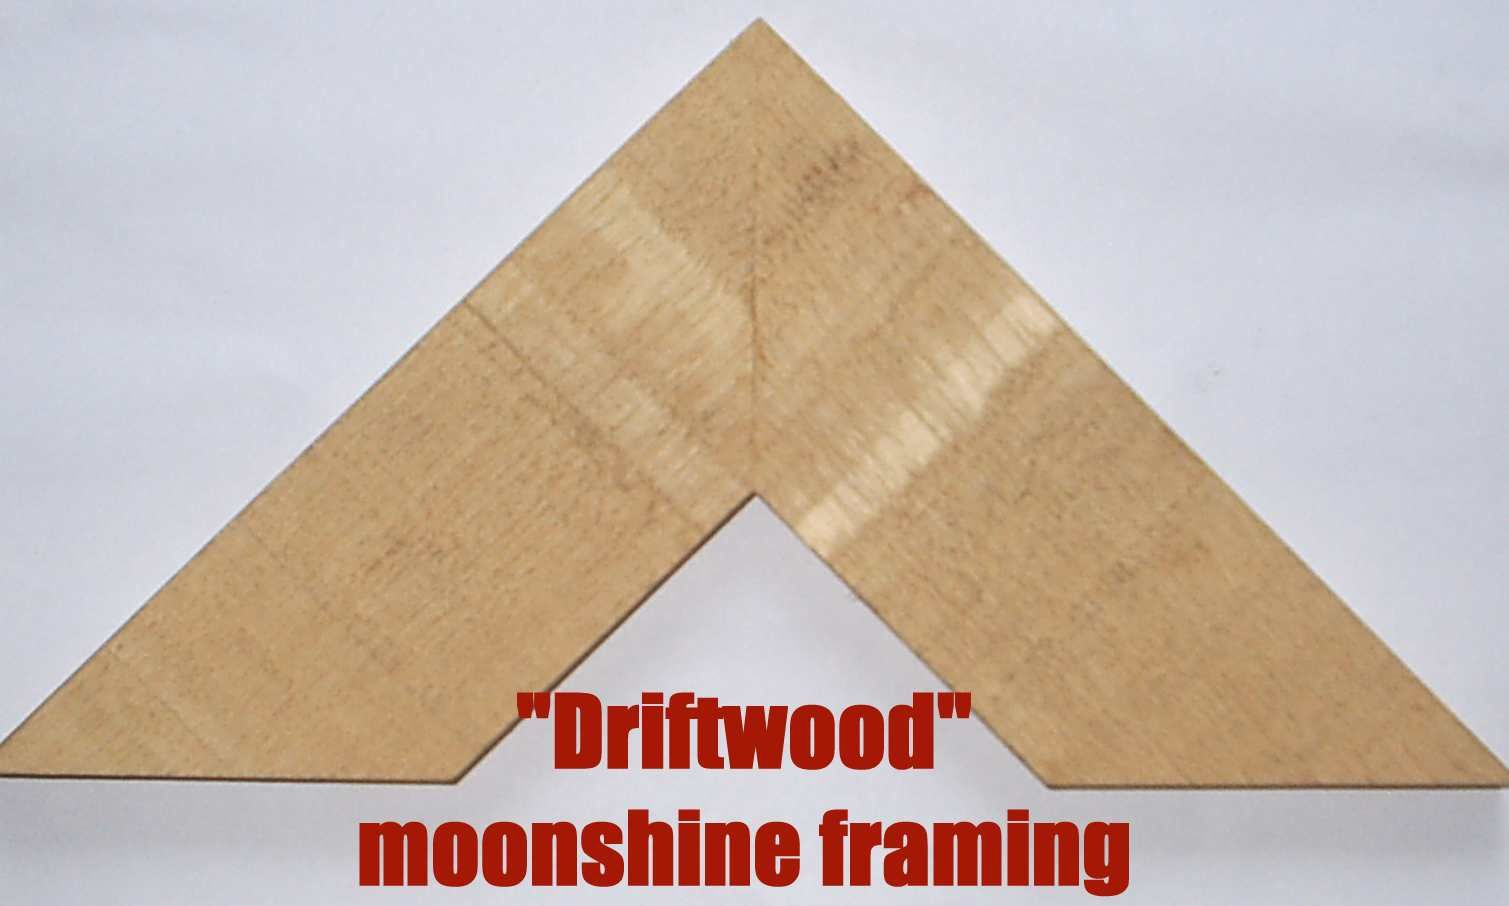 Moonshine S Driftwood A Plain Obeche Frame Moulding To Make Picture Frames Any Size Making Picture Frames Hanging Picture Frames Picture Frames